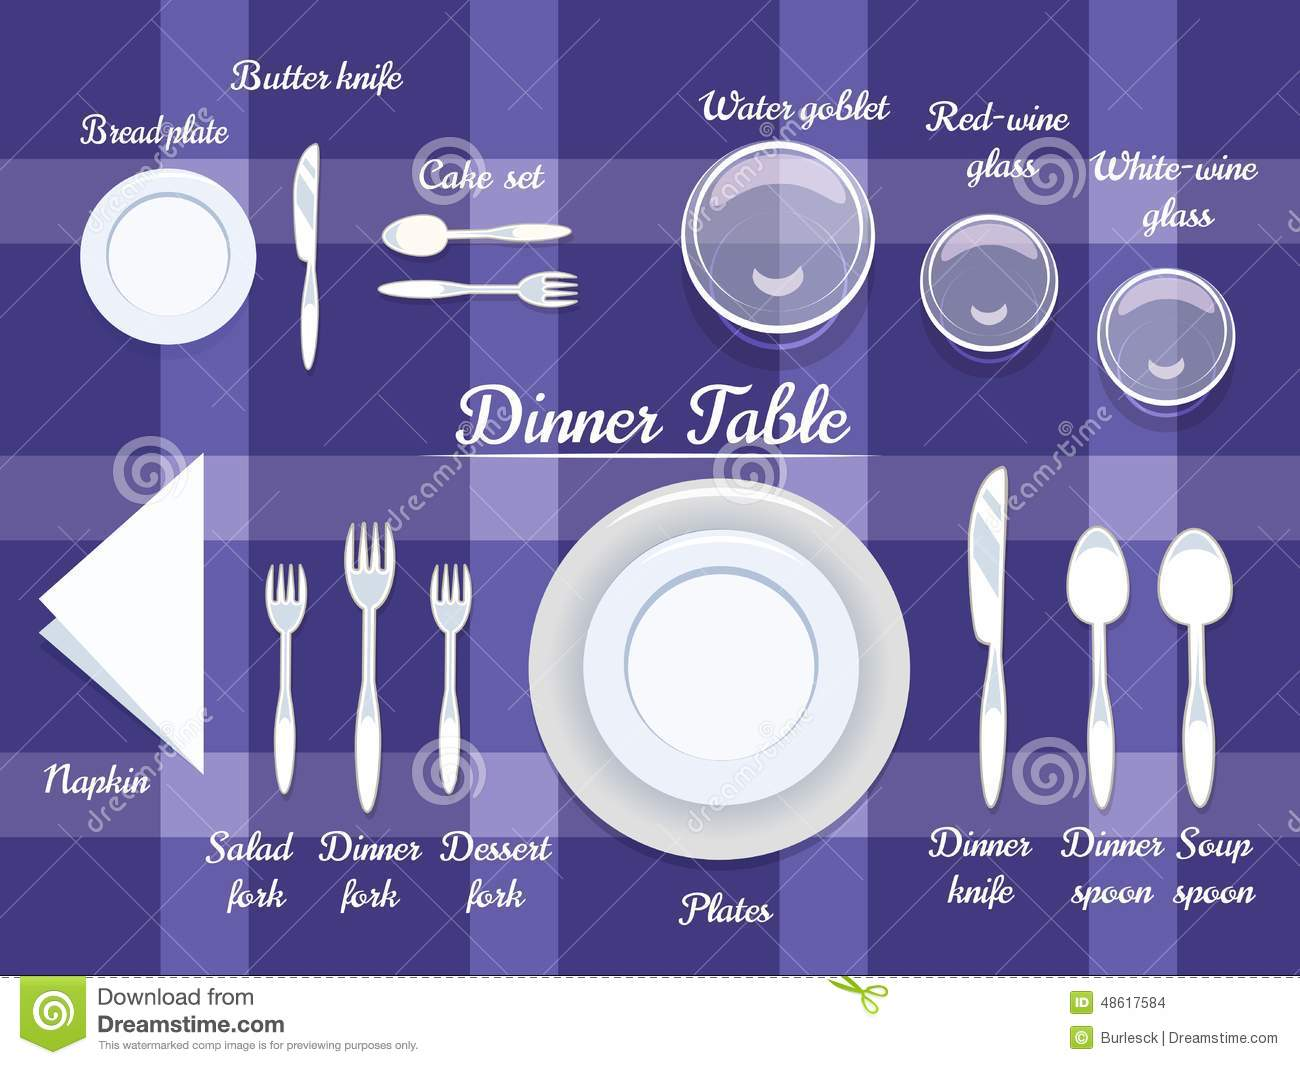 Cutlery On Dining Table Stock Vector Image 48617584 : cutlery dining table proper arrangement cartooned abstract violet background design 48617584 from www.dreamstime.com size 1300 x 1065 jpeg 119kB